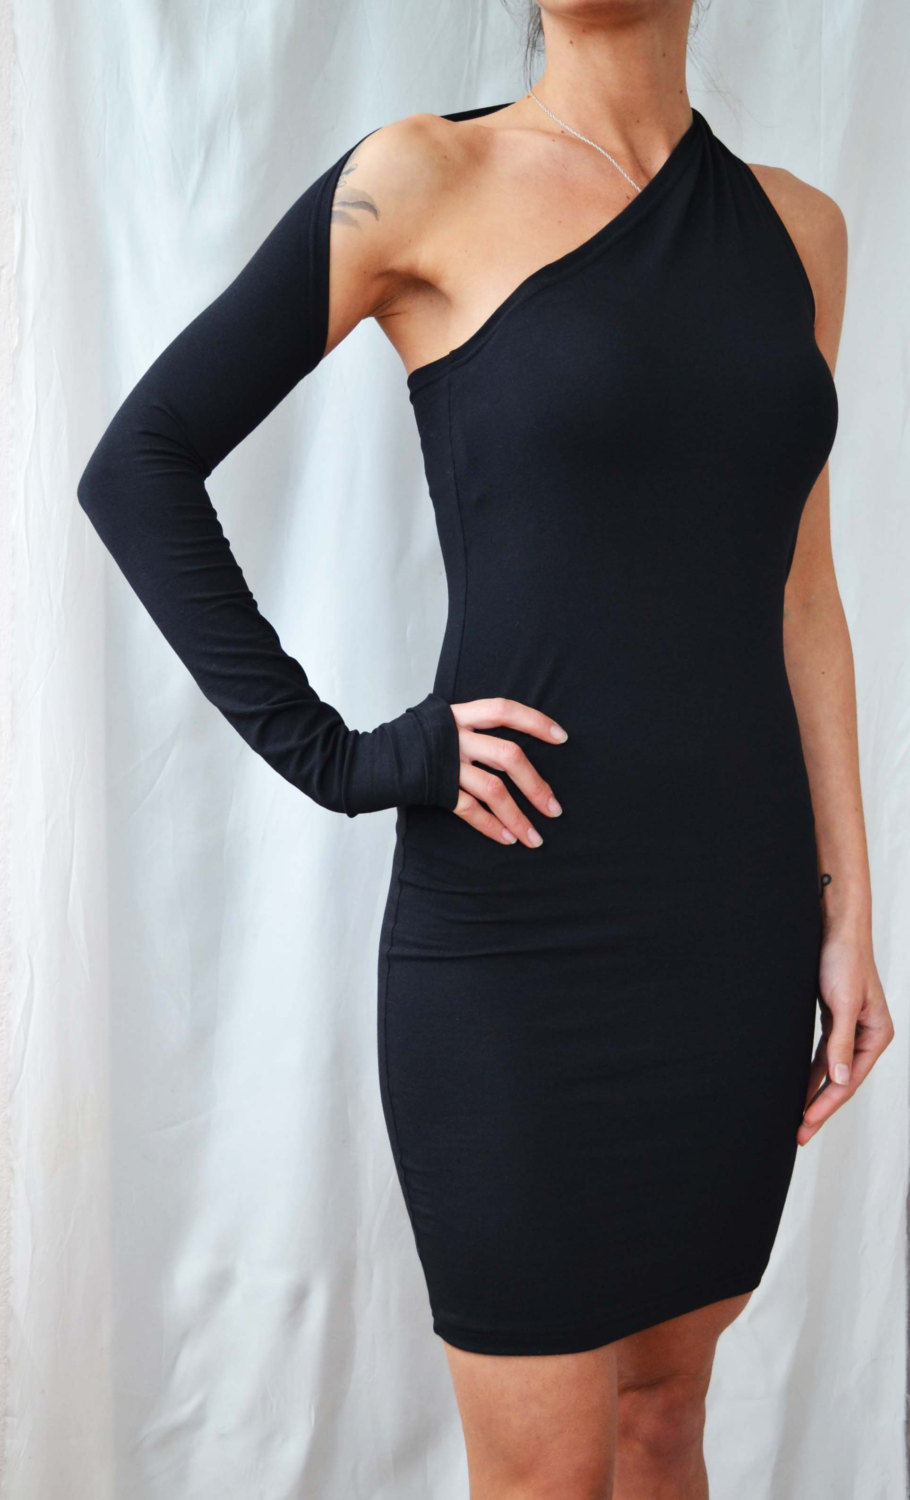 fb334980a5d ONE SHOULDER DRESS Sexy Black Dress One Sleeve by Cvetinka on Zibbet